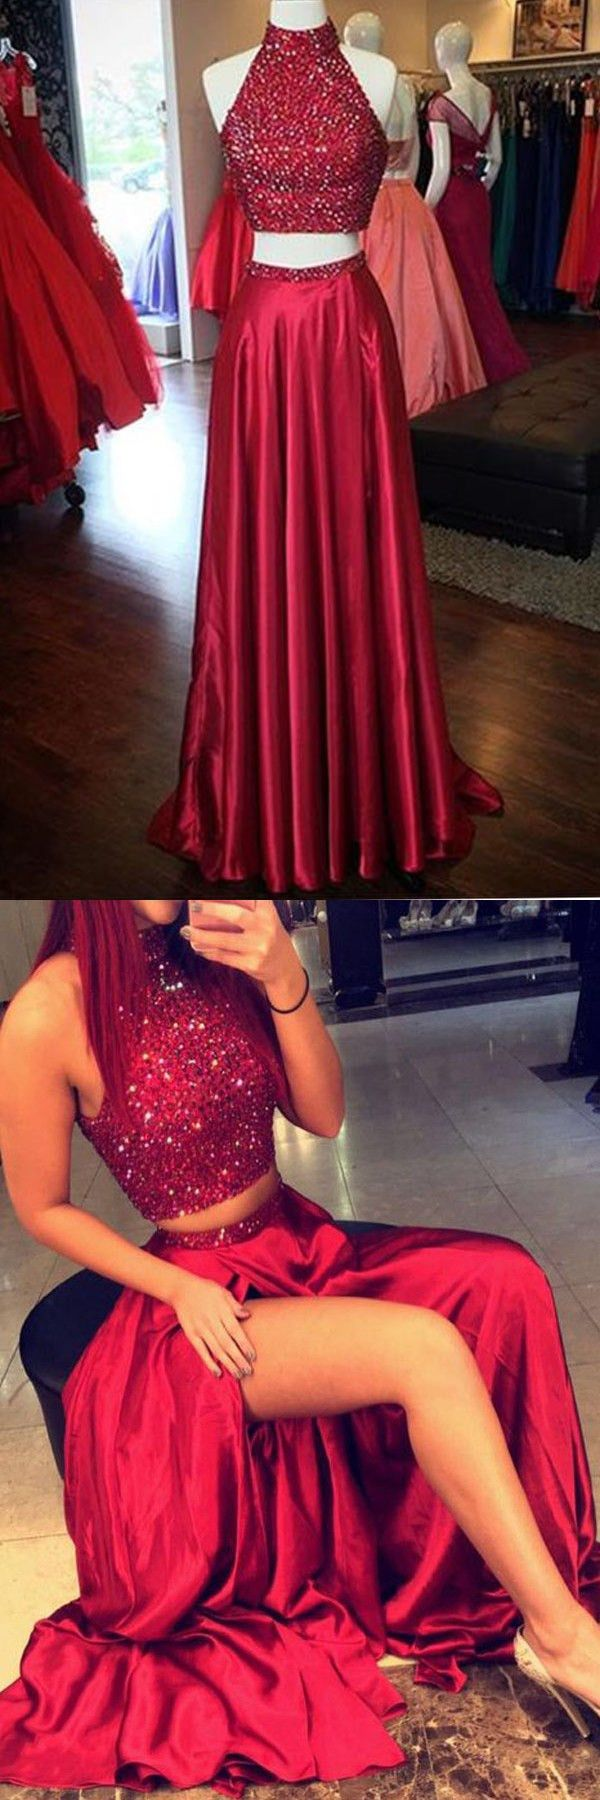 best prom stuff images on pinterest looking forward princess